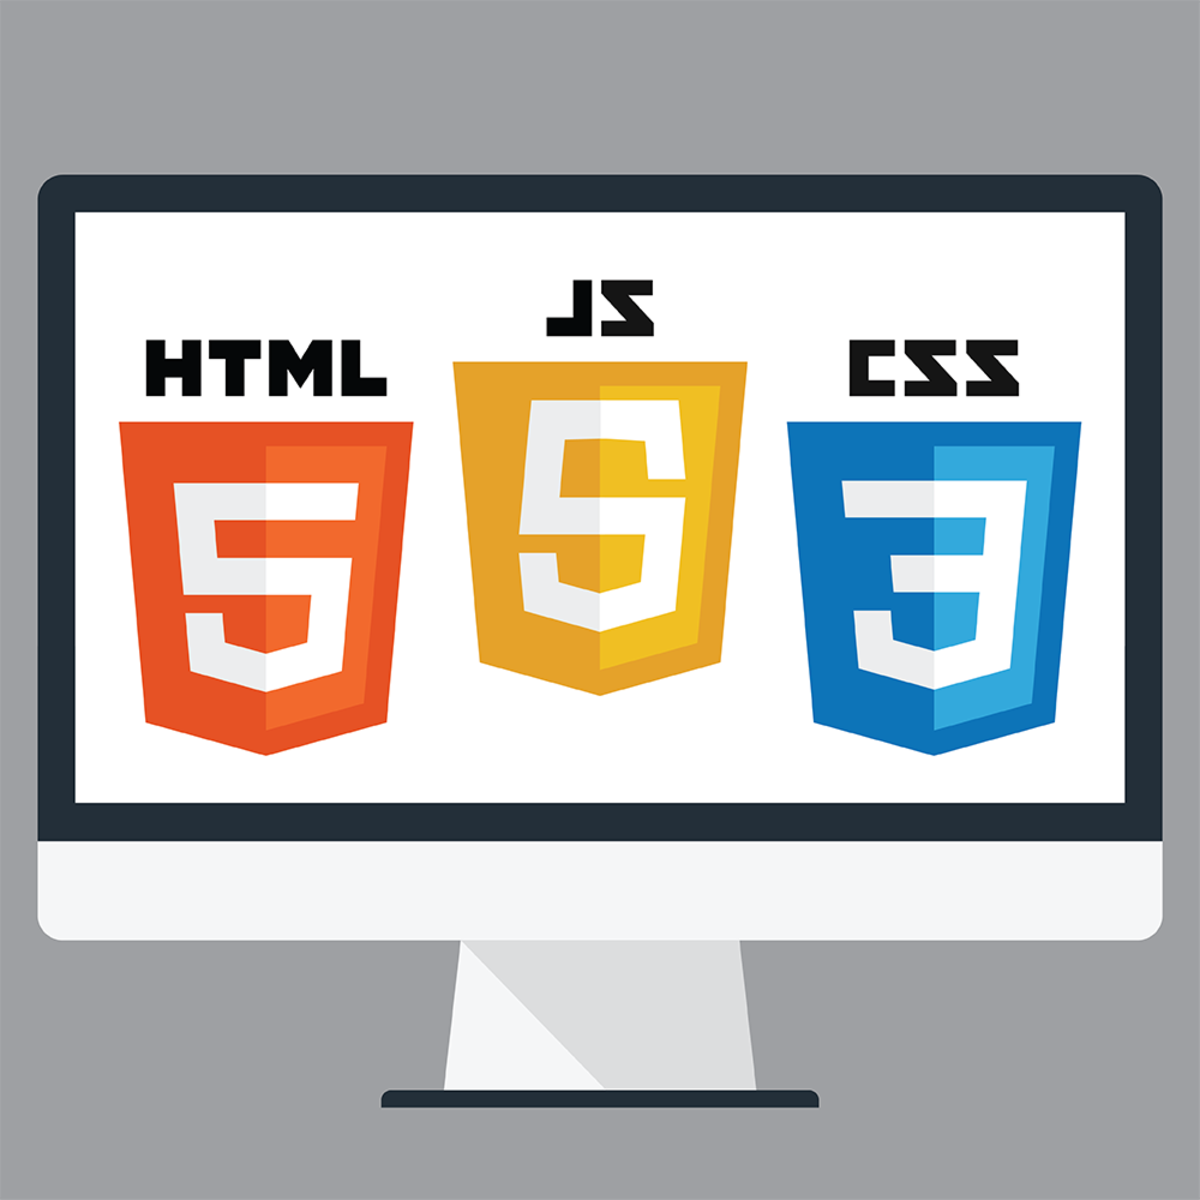 Coursera Free : HTML, CSS, and Javascript for Web Developers